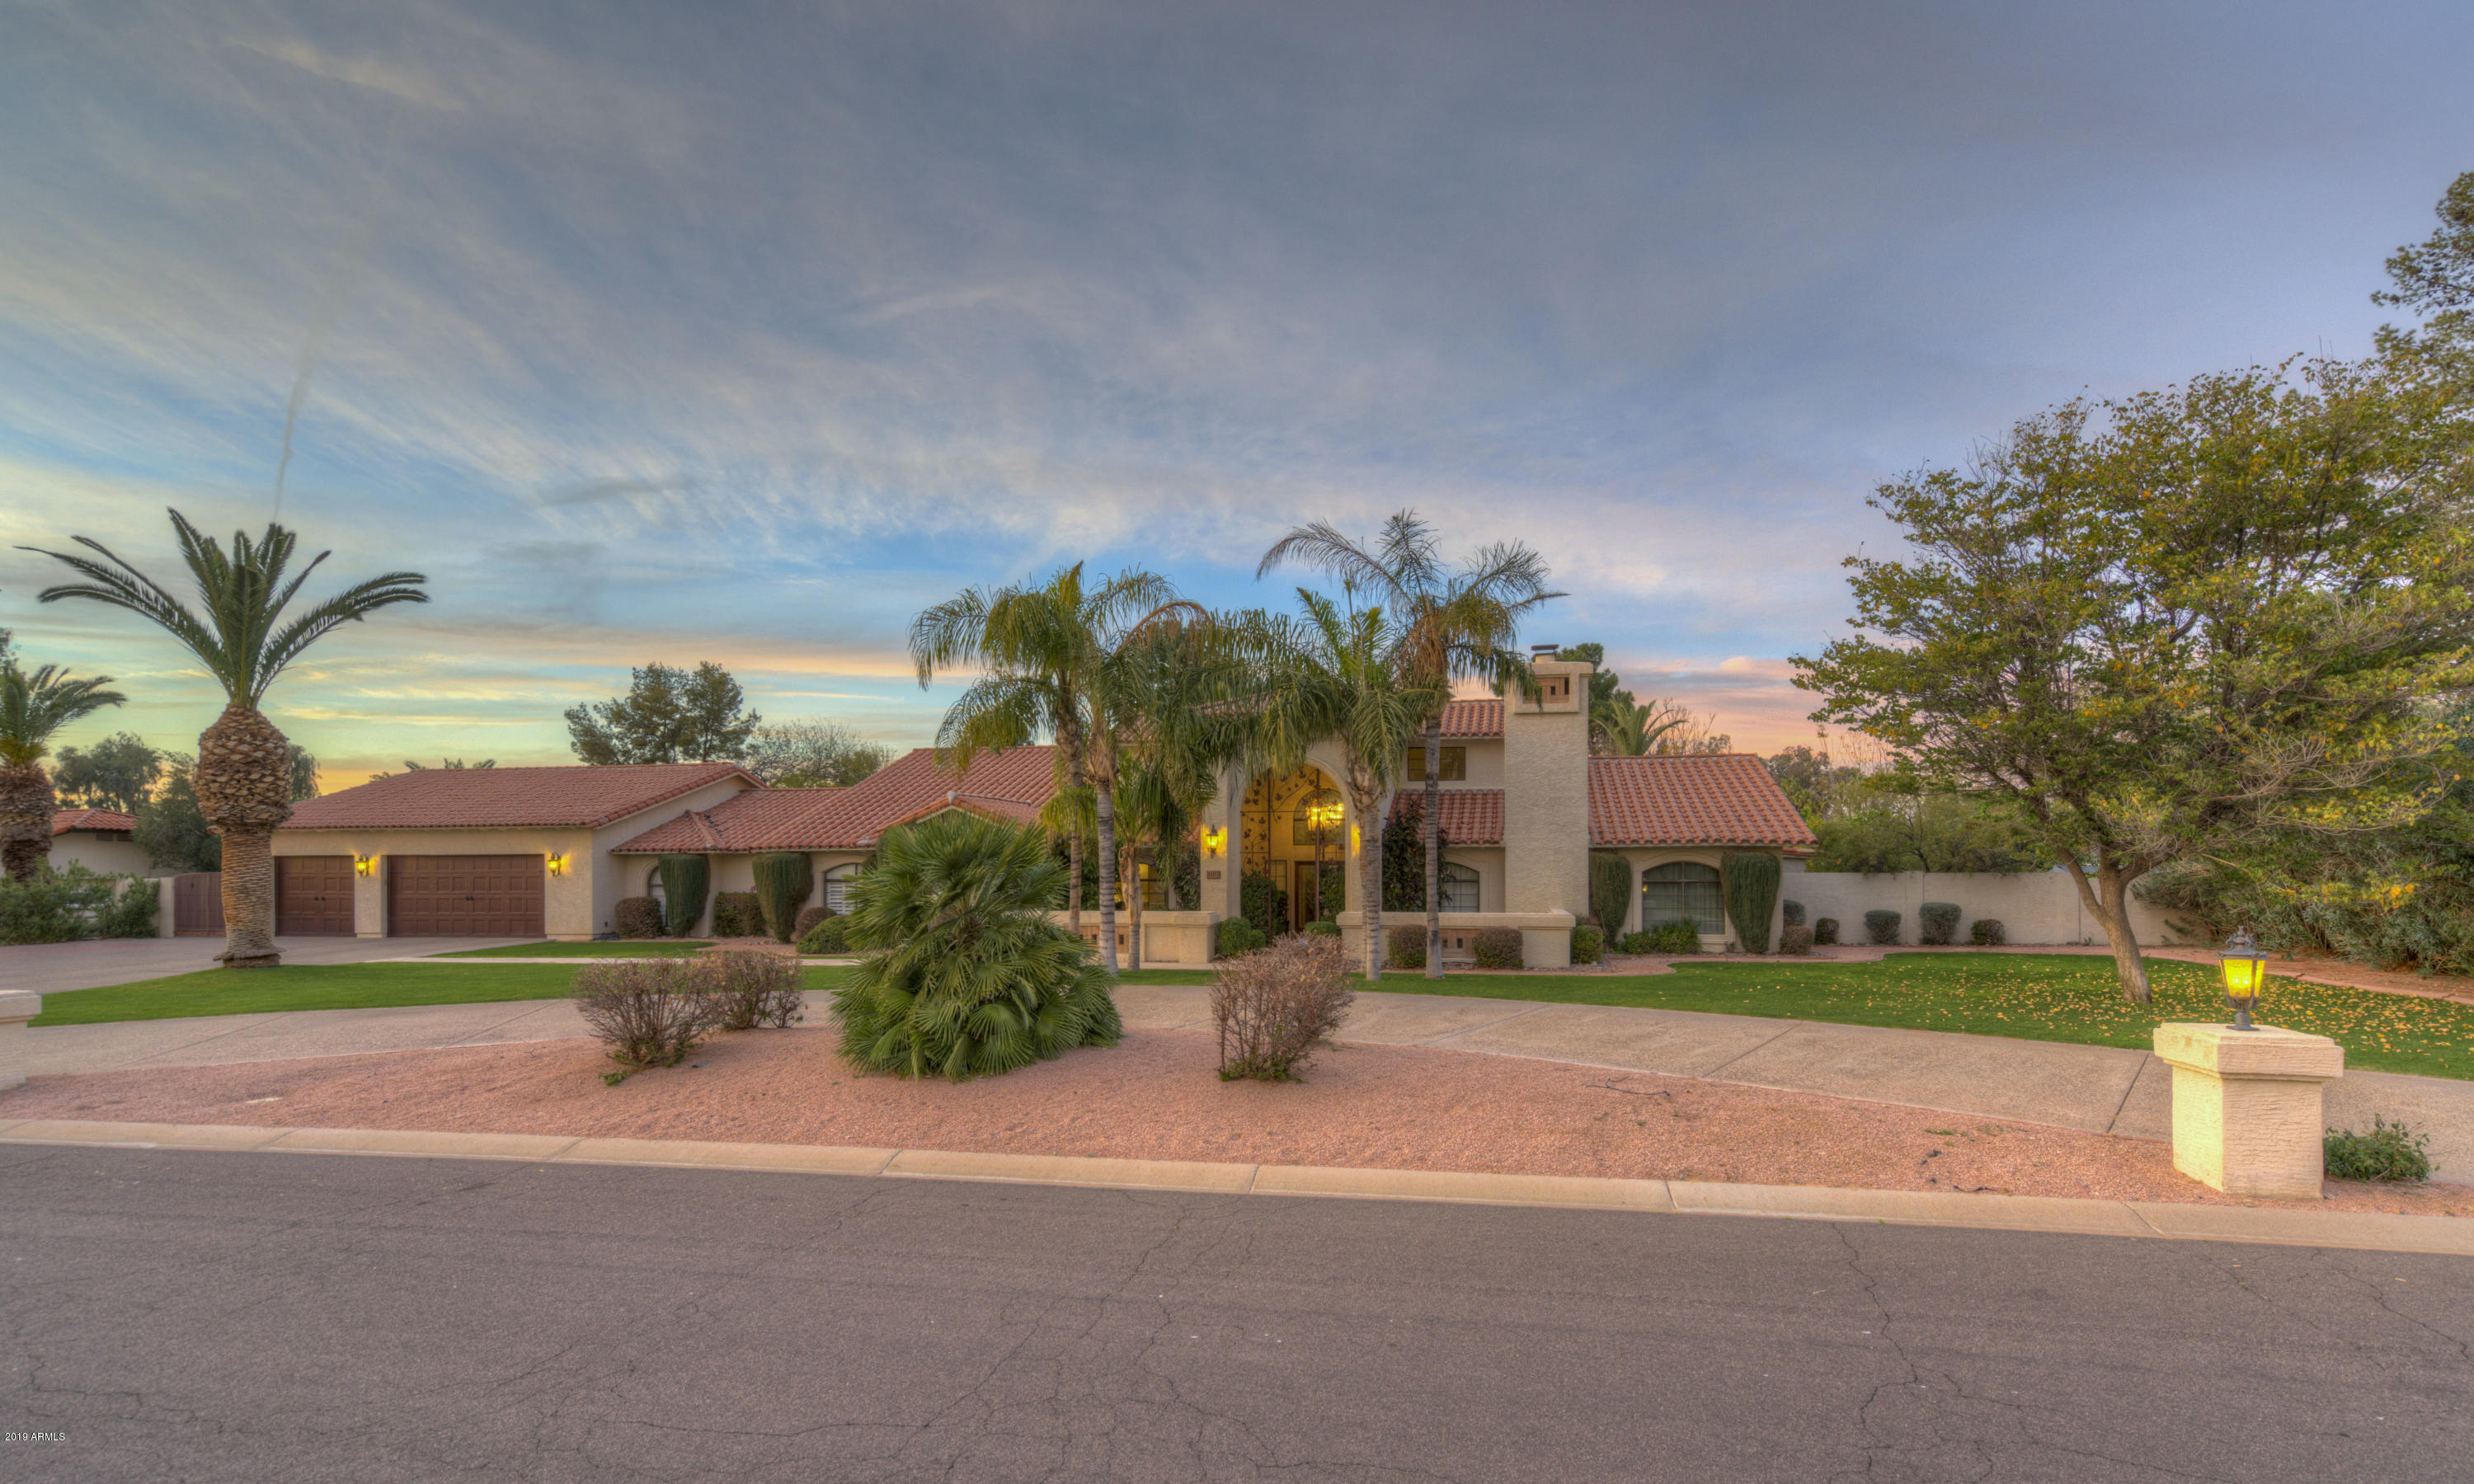 MLS 5894266 8250 E CAPTAIN DREYFUS Avenue, Scottsdale, AZ 85260 Scottsdale AZ Private Pool